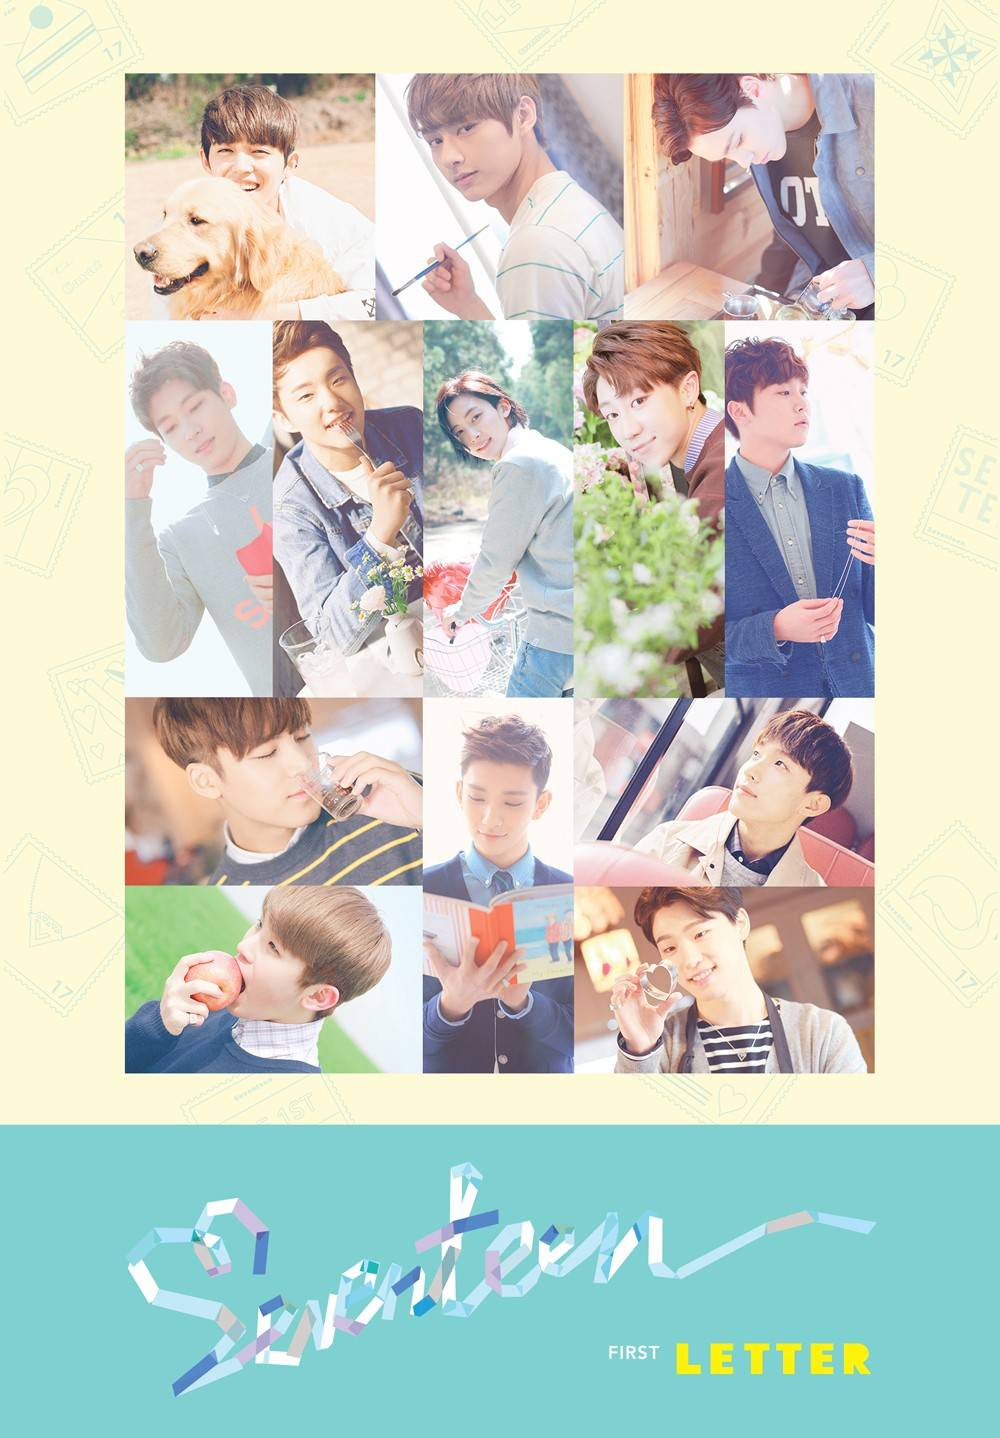 Seventeen - 1st Album: Love & Letter CD (Letter Version)